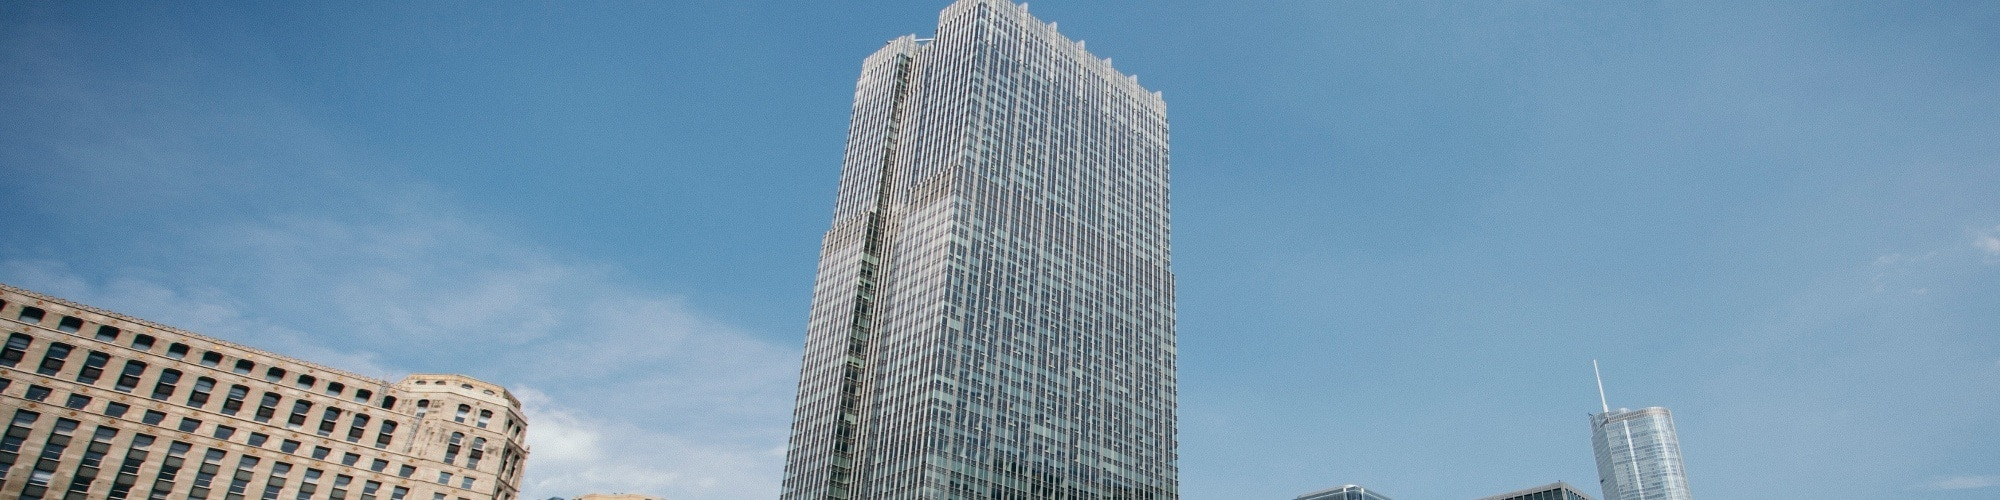 banner-north-lasalle-chicago-skyline.jpg